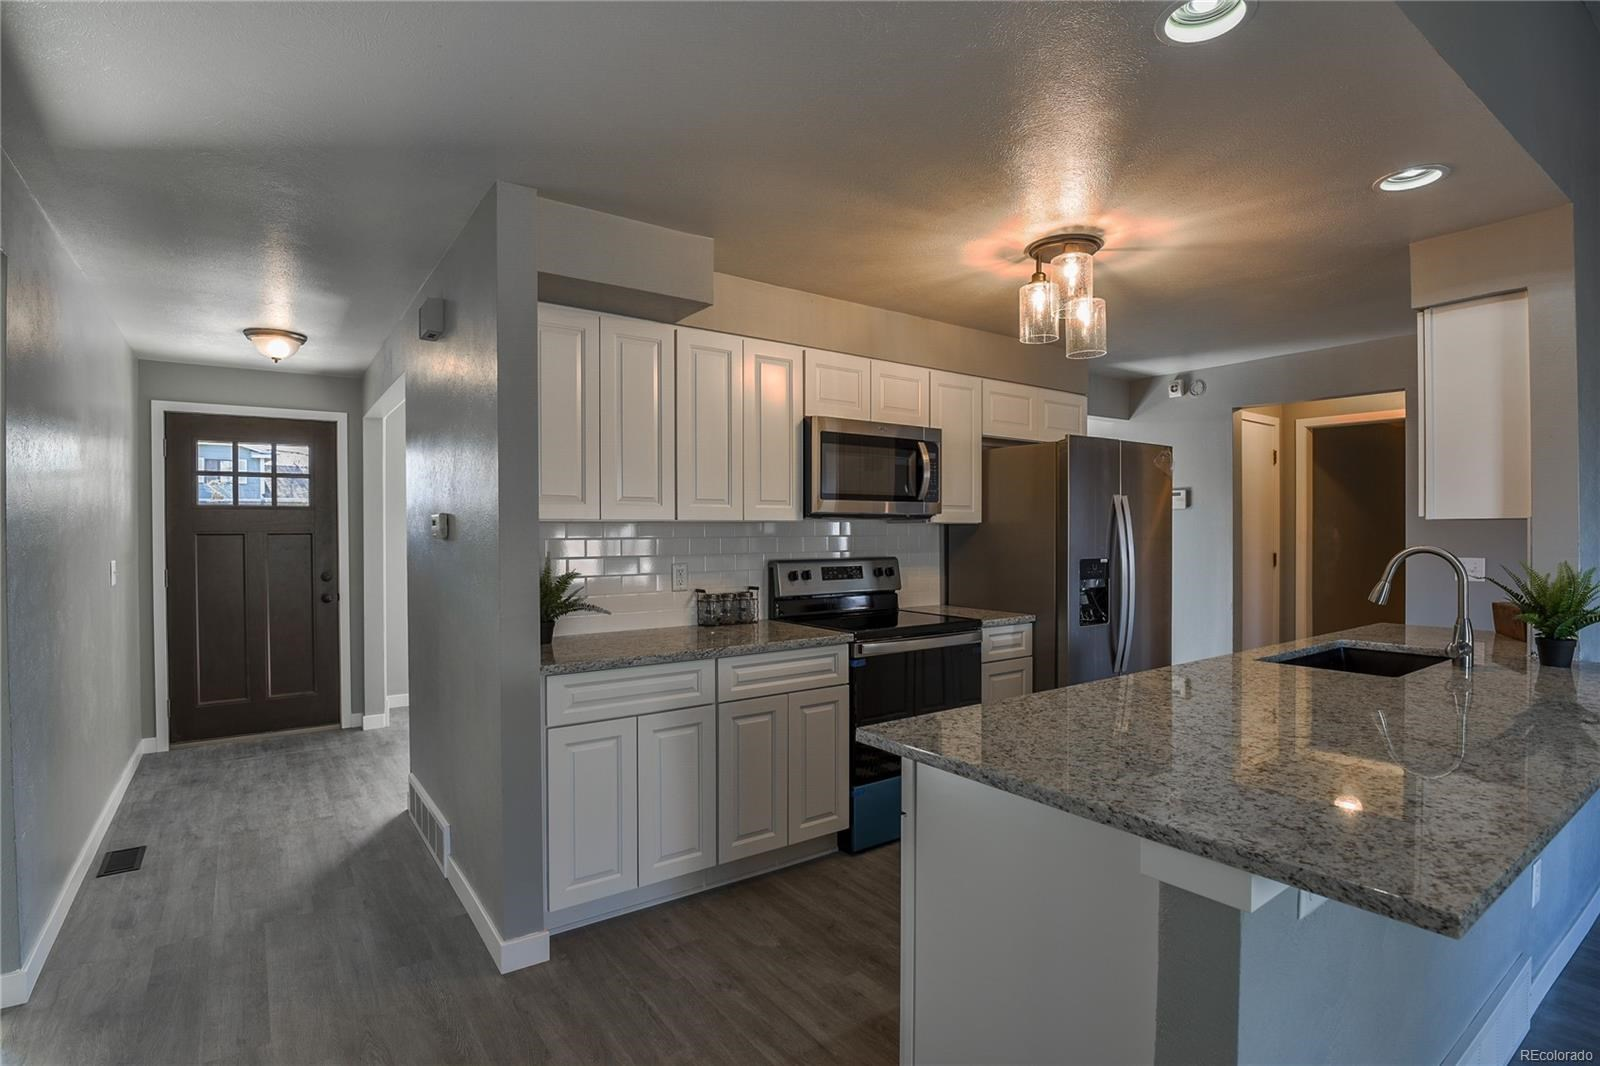 MLS# 8183776 - 2 - 2547 W 104th Circle, Westminster, CO 80234